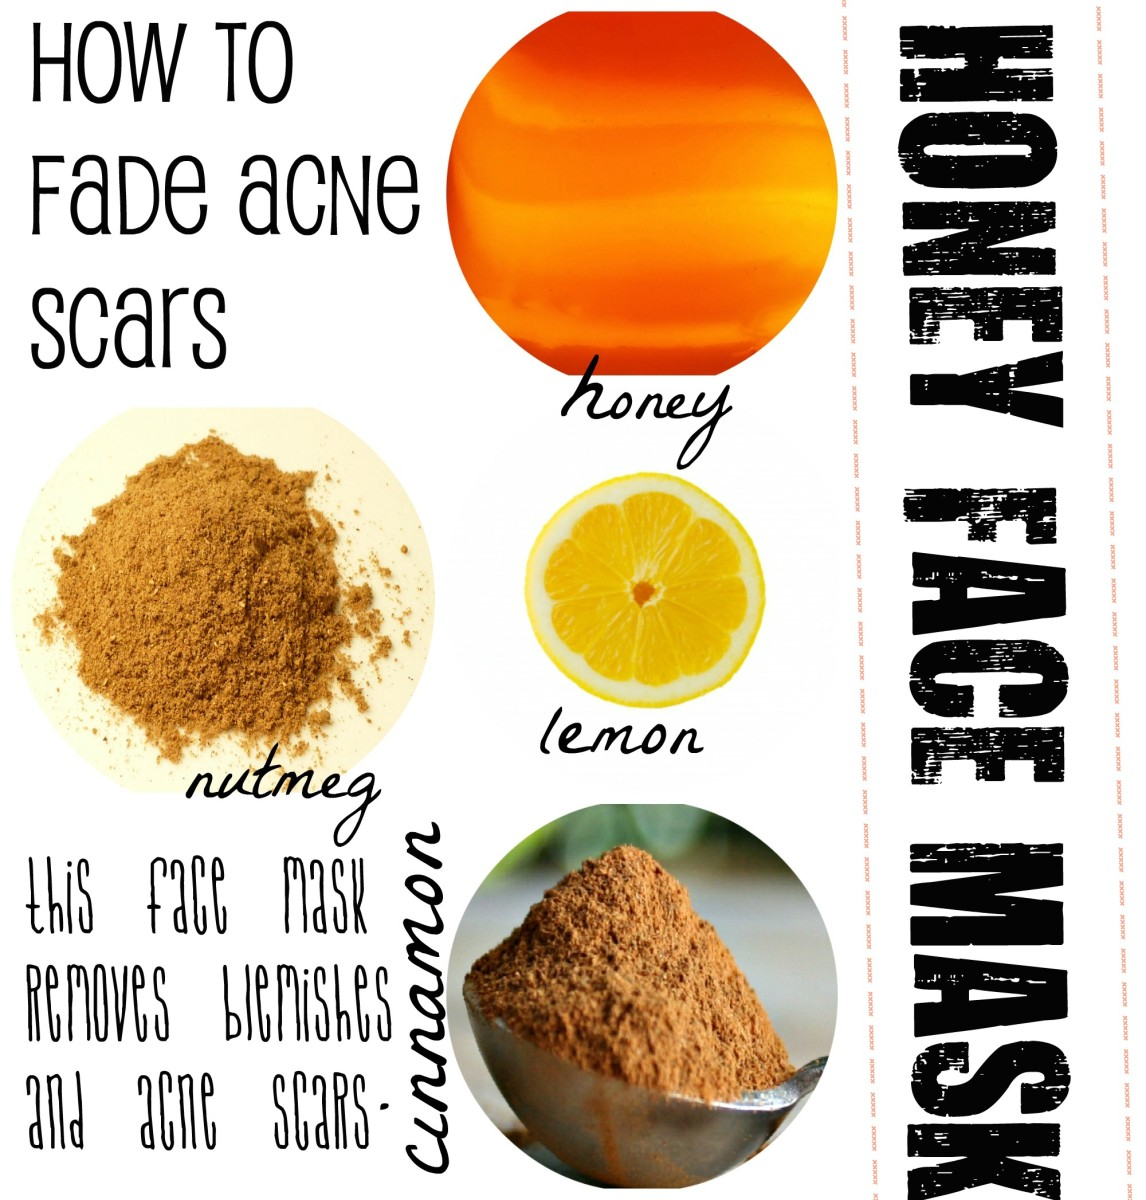 Honey face masks can help you fade acne scars and even out skin discolouration, giving your bright and toned skin.